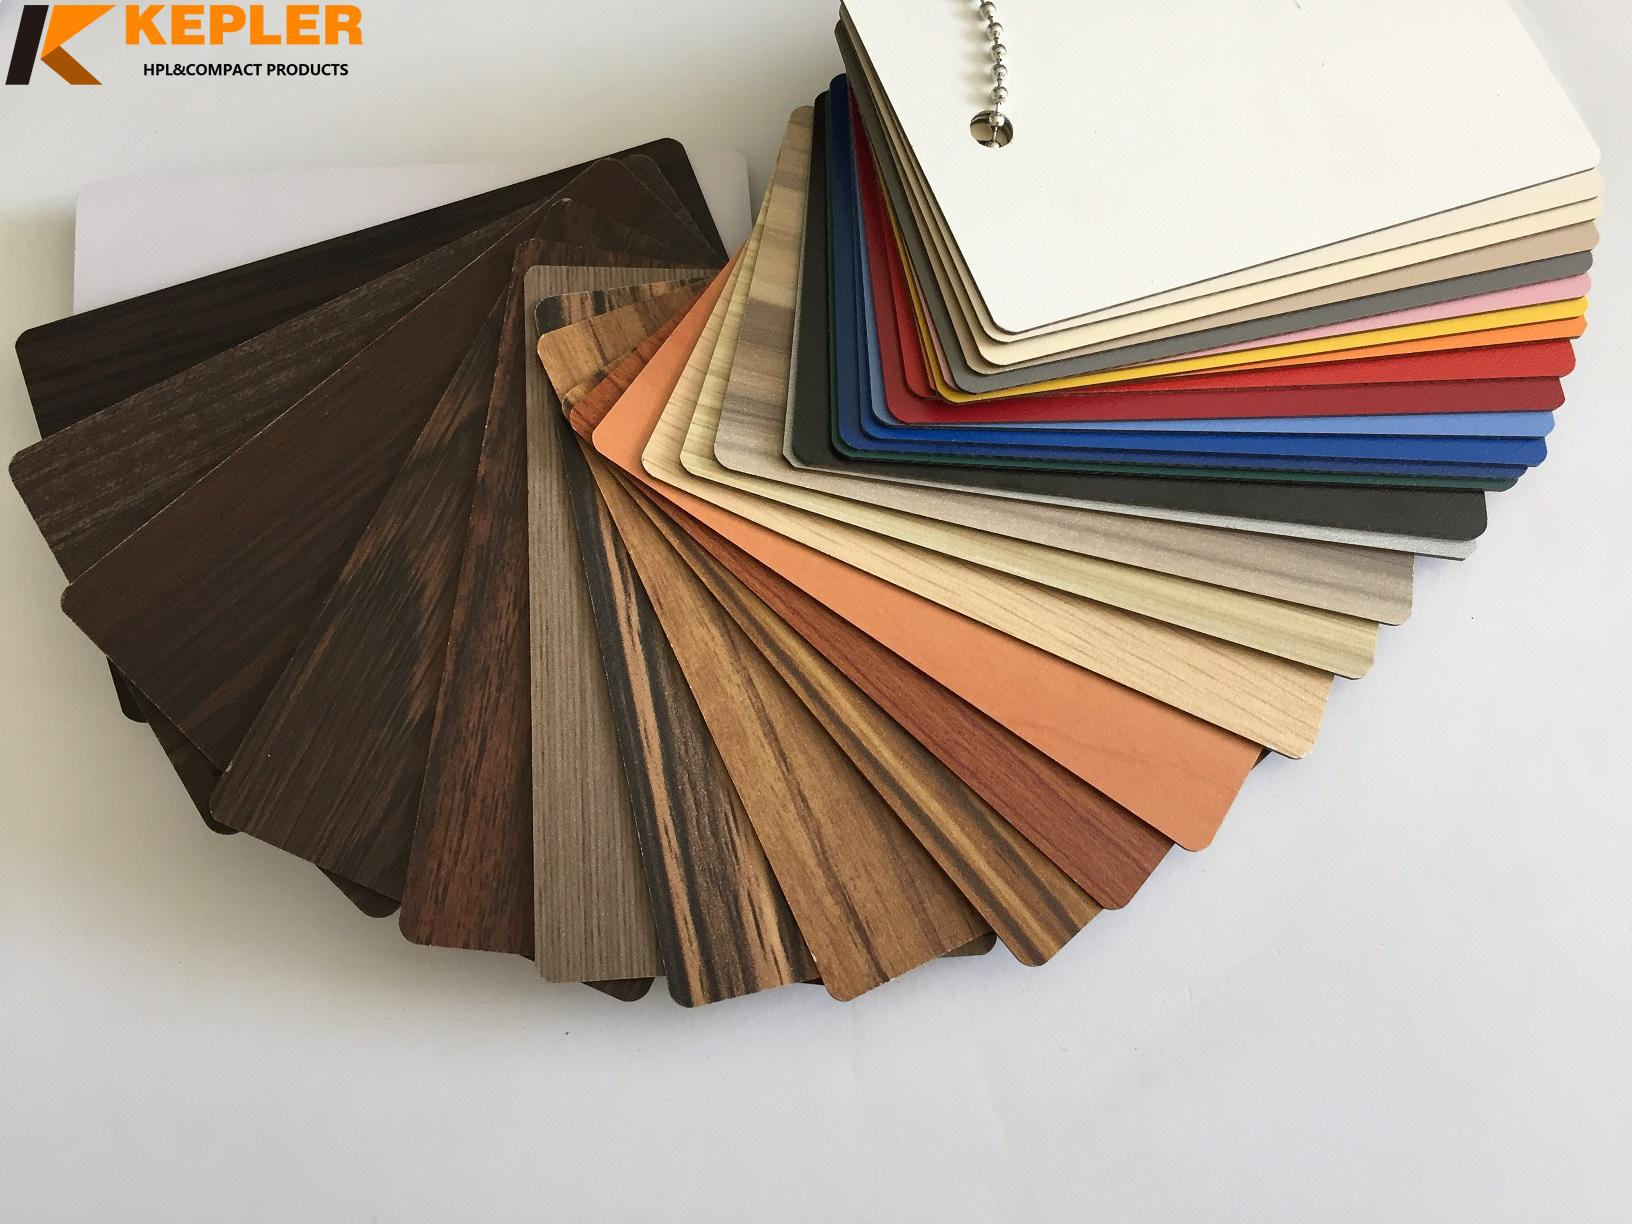 Kepler decorative waterproof durable 1.3mm thickness white color solid core hpl compact laminate panel manufacturer